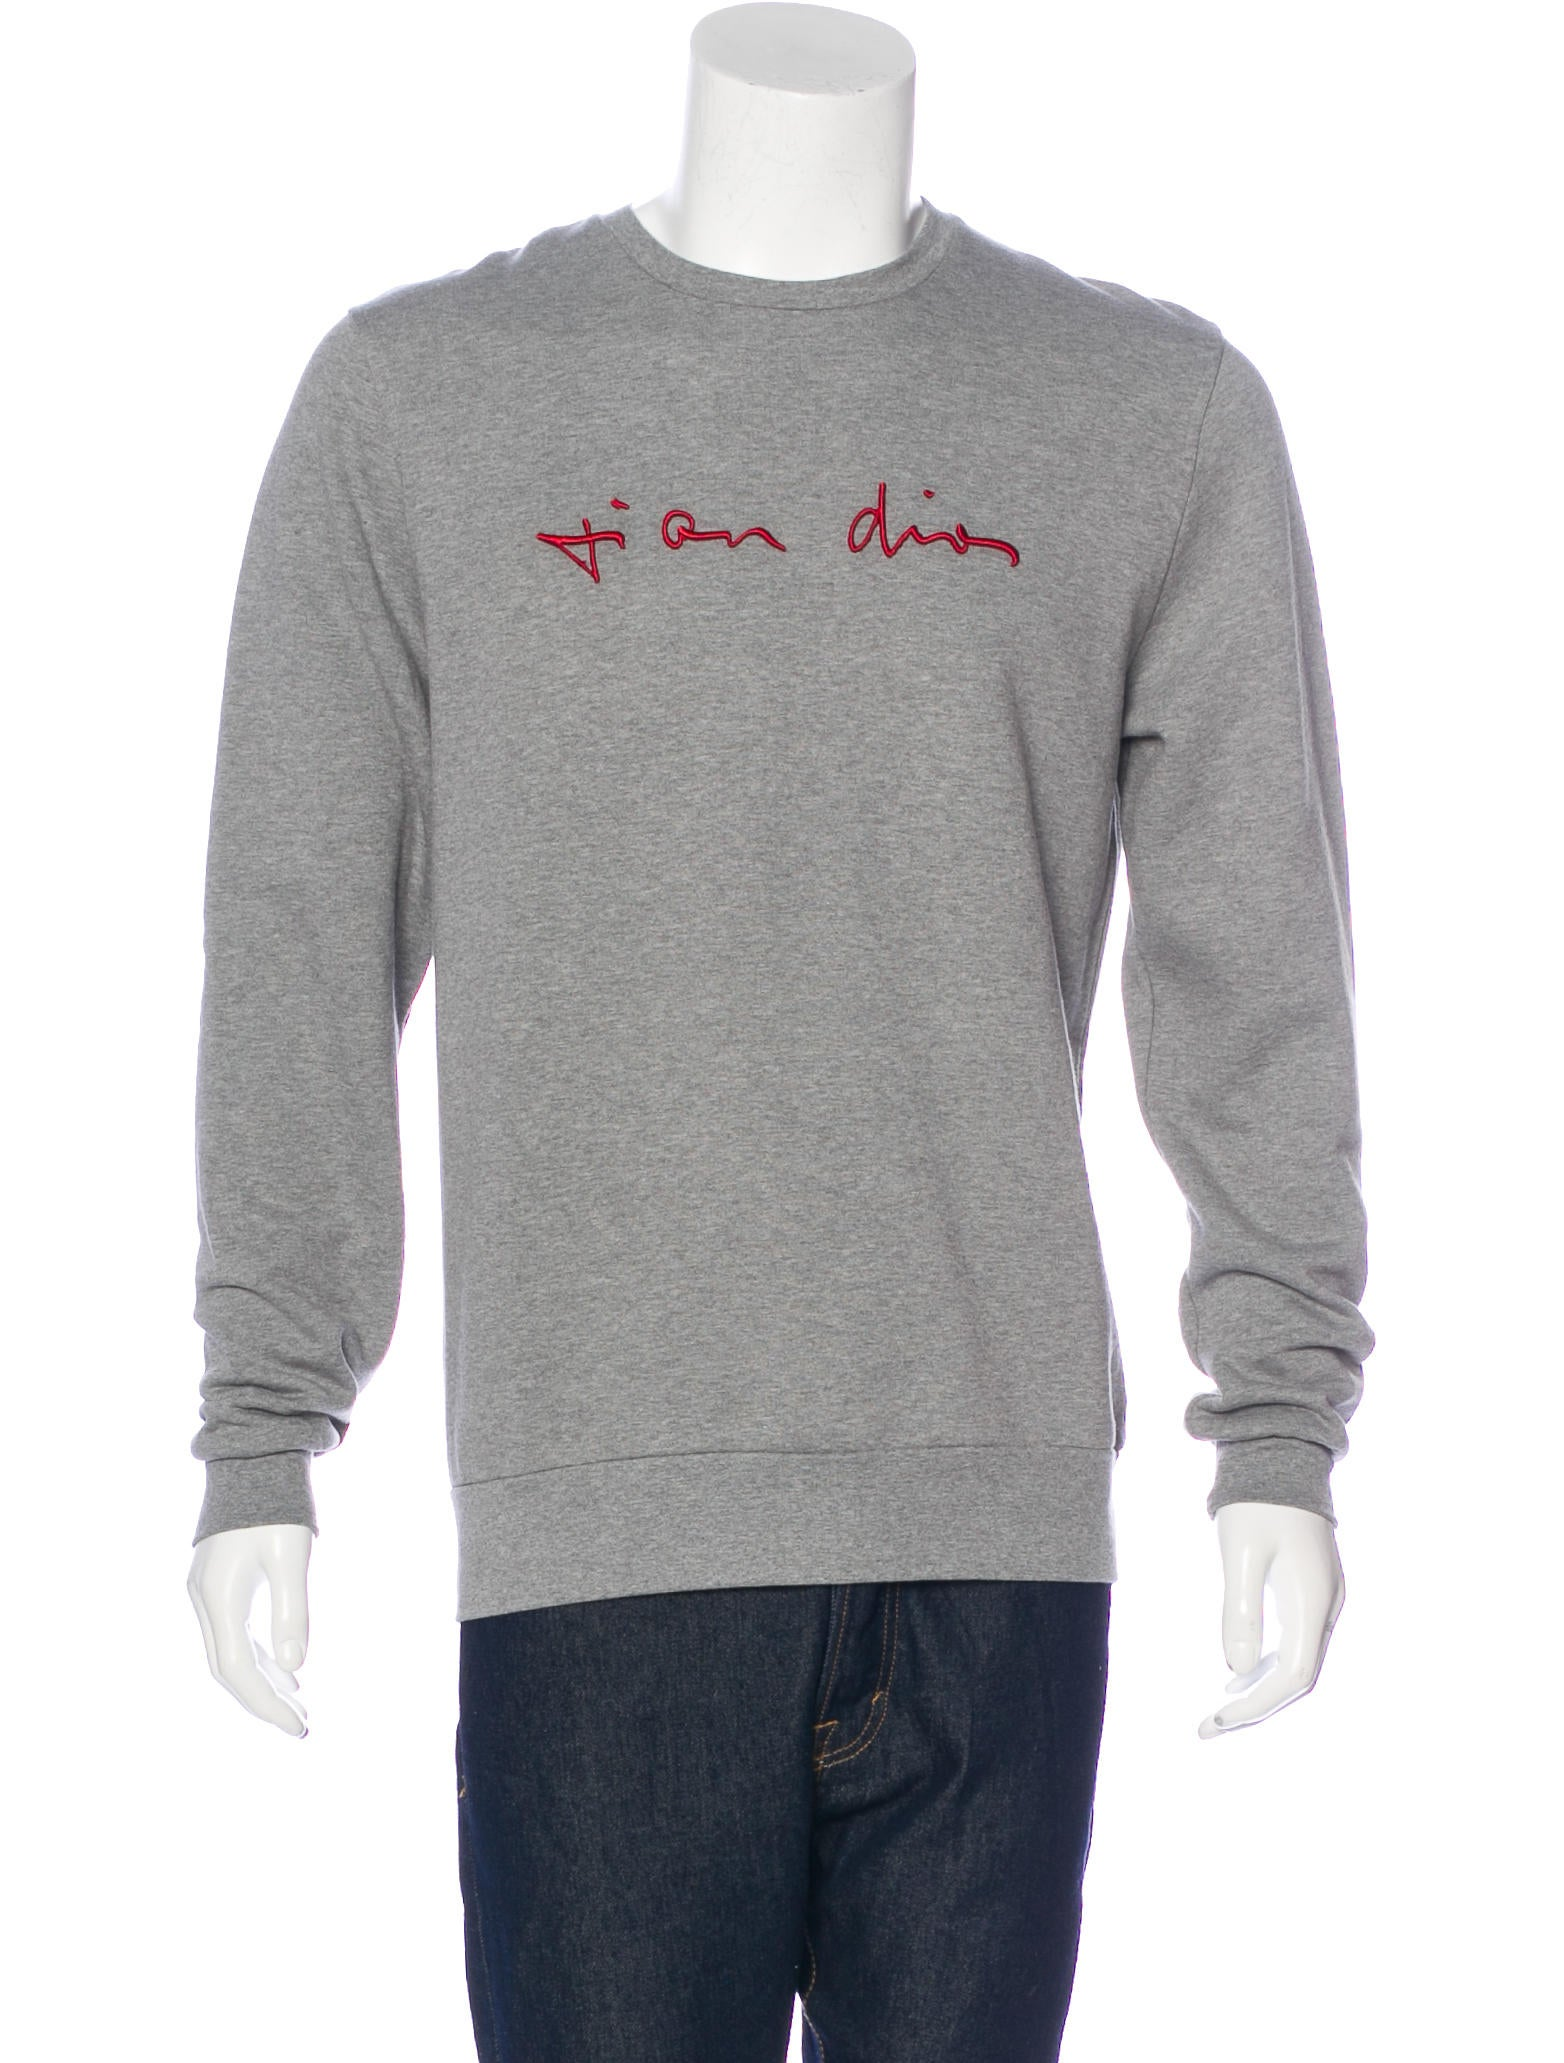 dior homme embroidered crew neck sweatshirt clothing hmm23426 the realreal. Black Bedroom Furniture Sets. Home Design Ideas